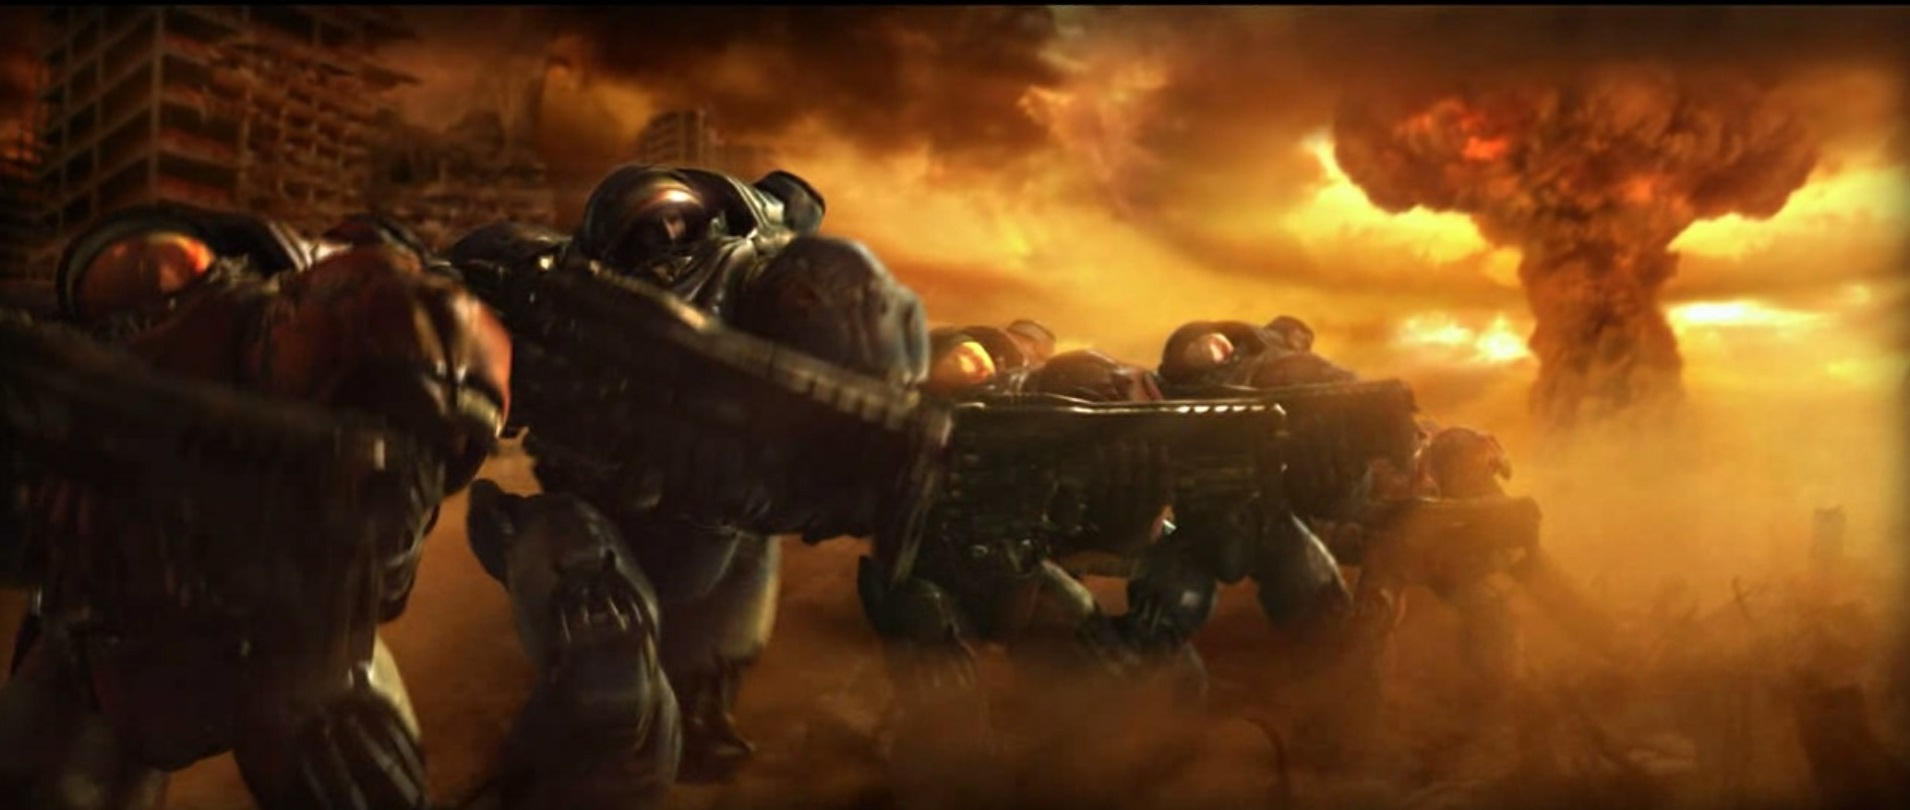 StarCraft II: Wings of Liberty Review | Gammicks